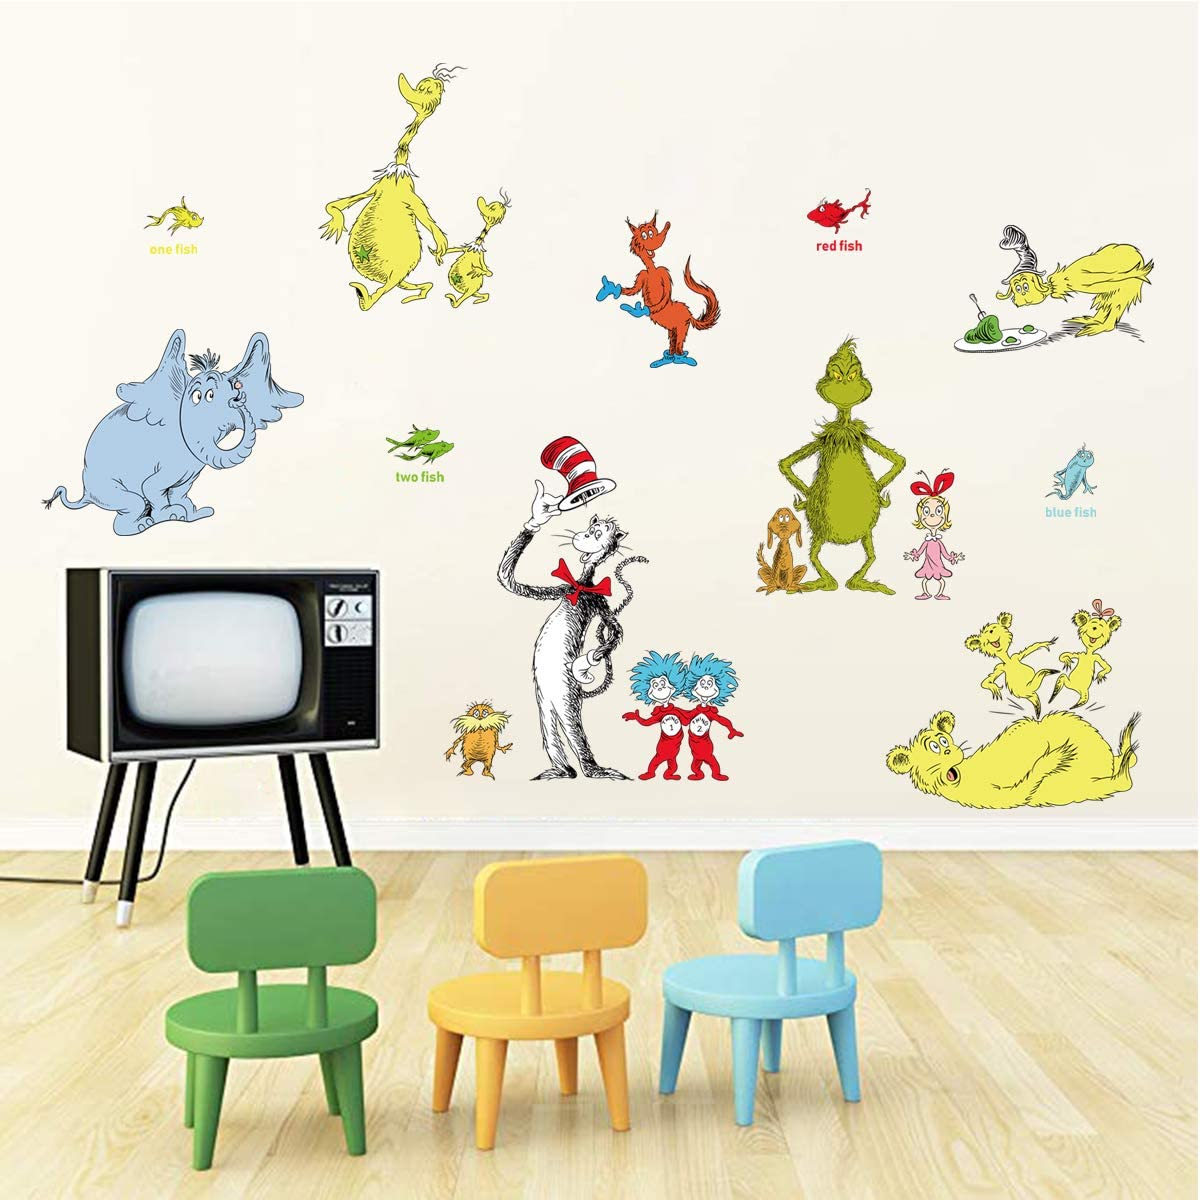 decalmile Cute Cartoon Characters Wall Stickers Kids Wall Decals Childrens Bedroom Classroom Wall Decor